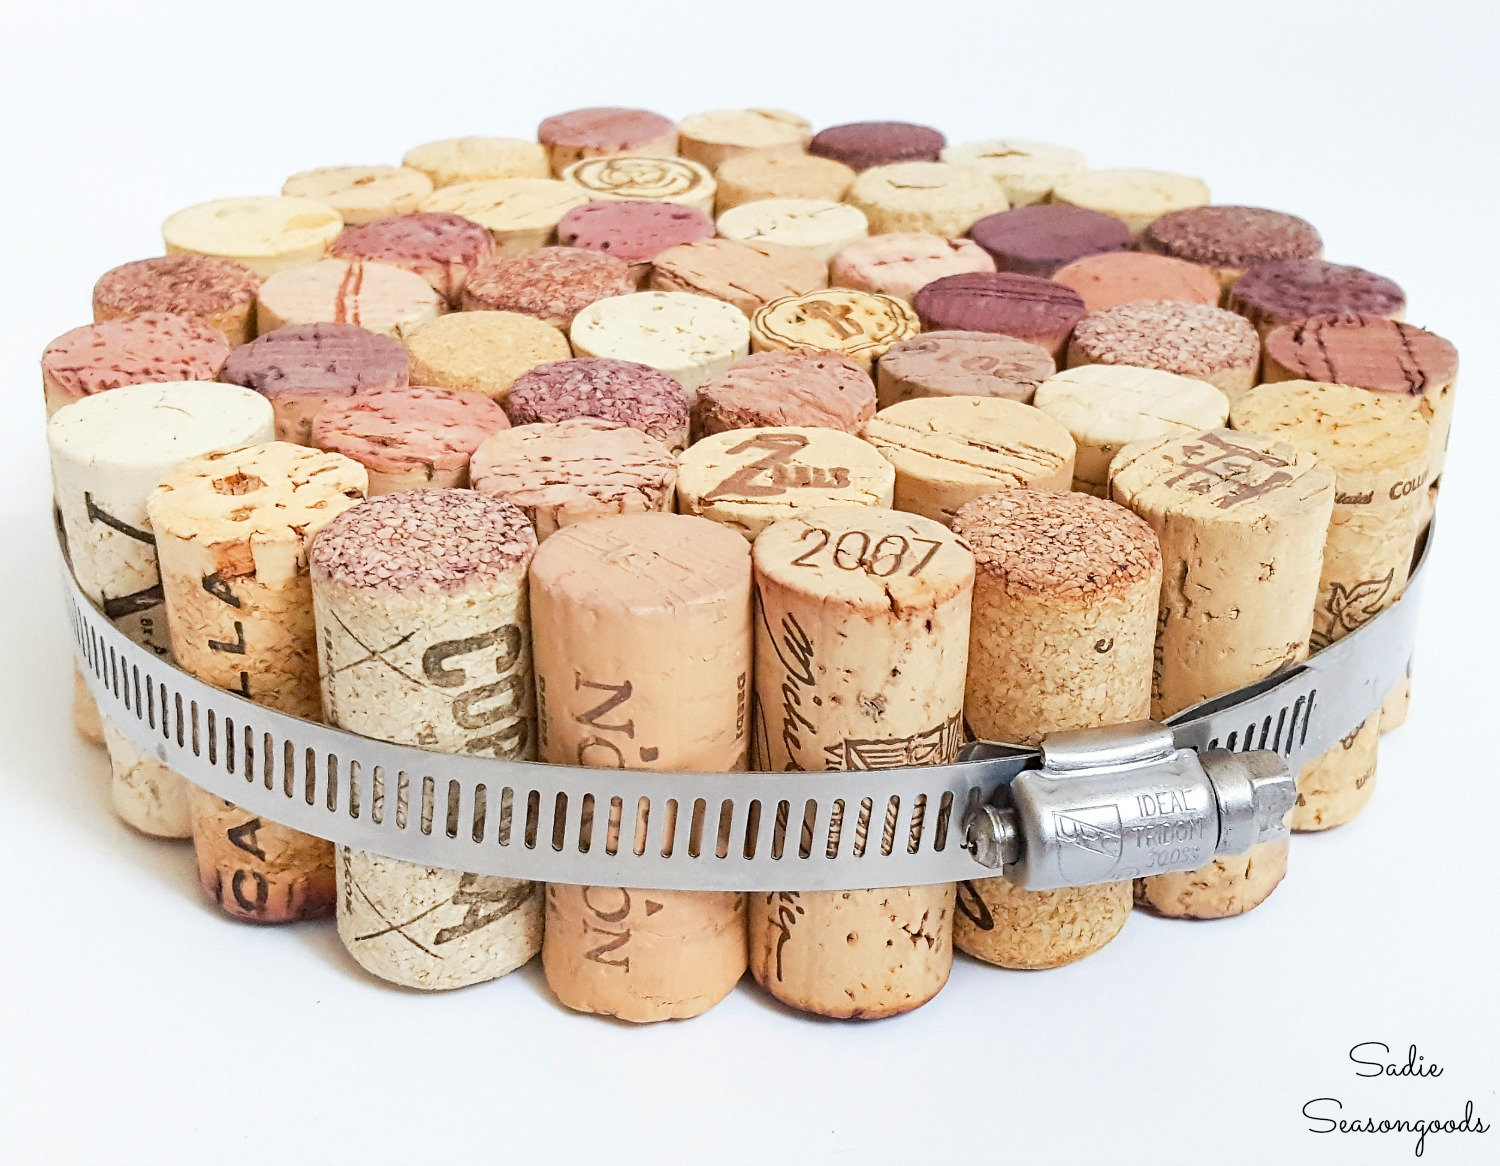 Cork trivet to use as a kitchen hot pad as a cork craft idea